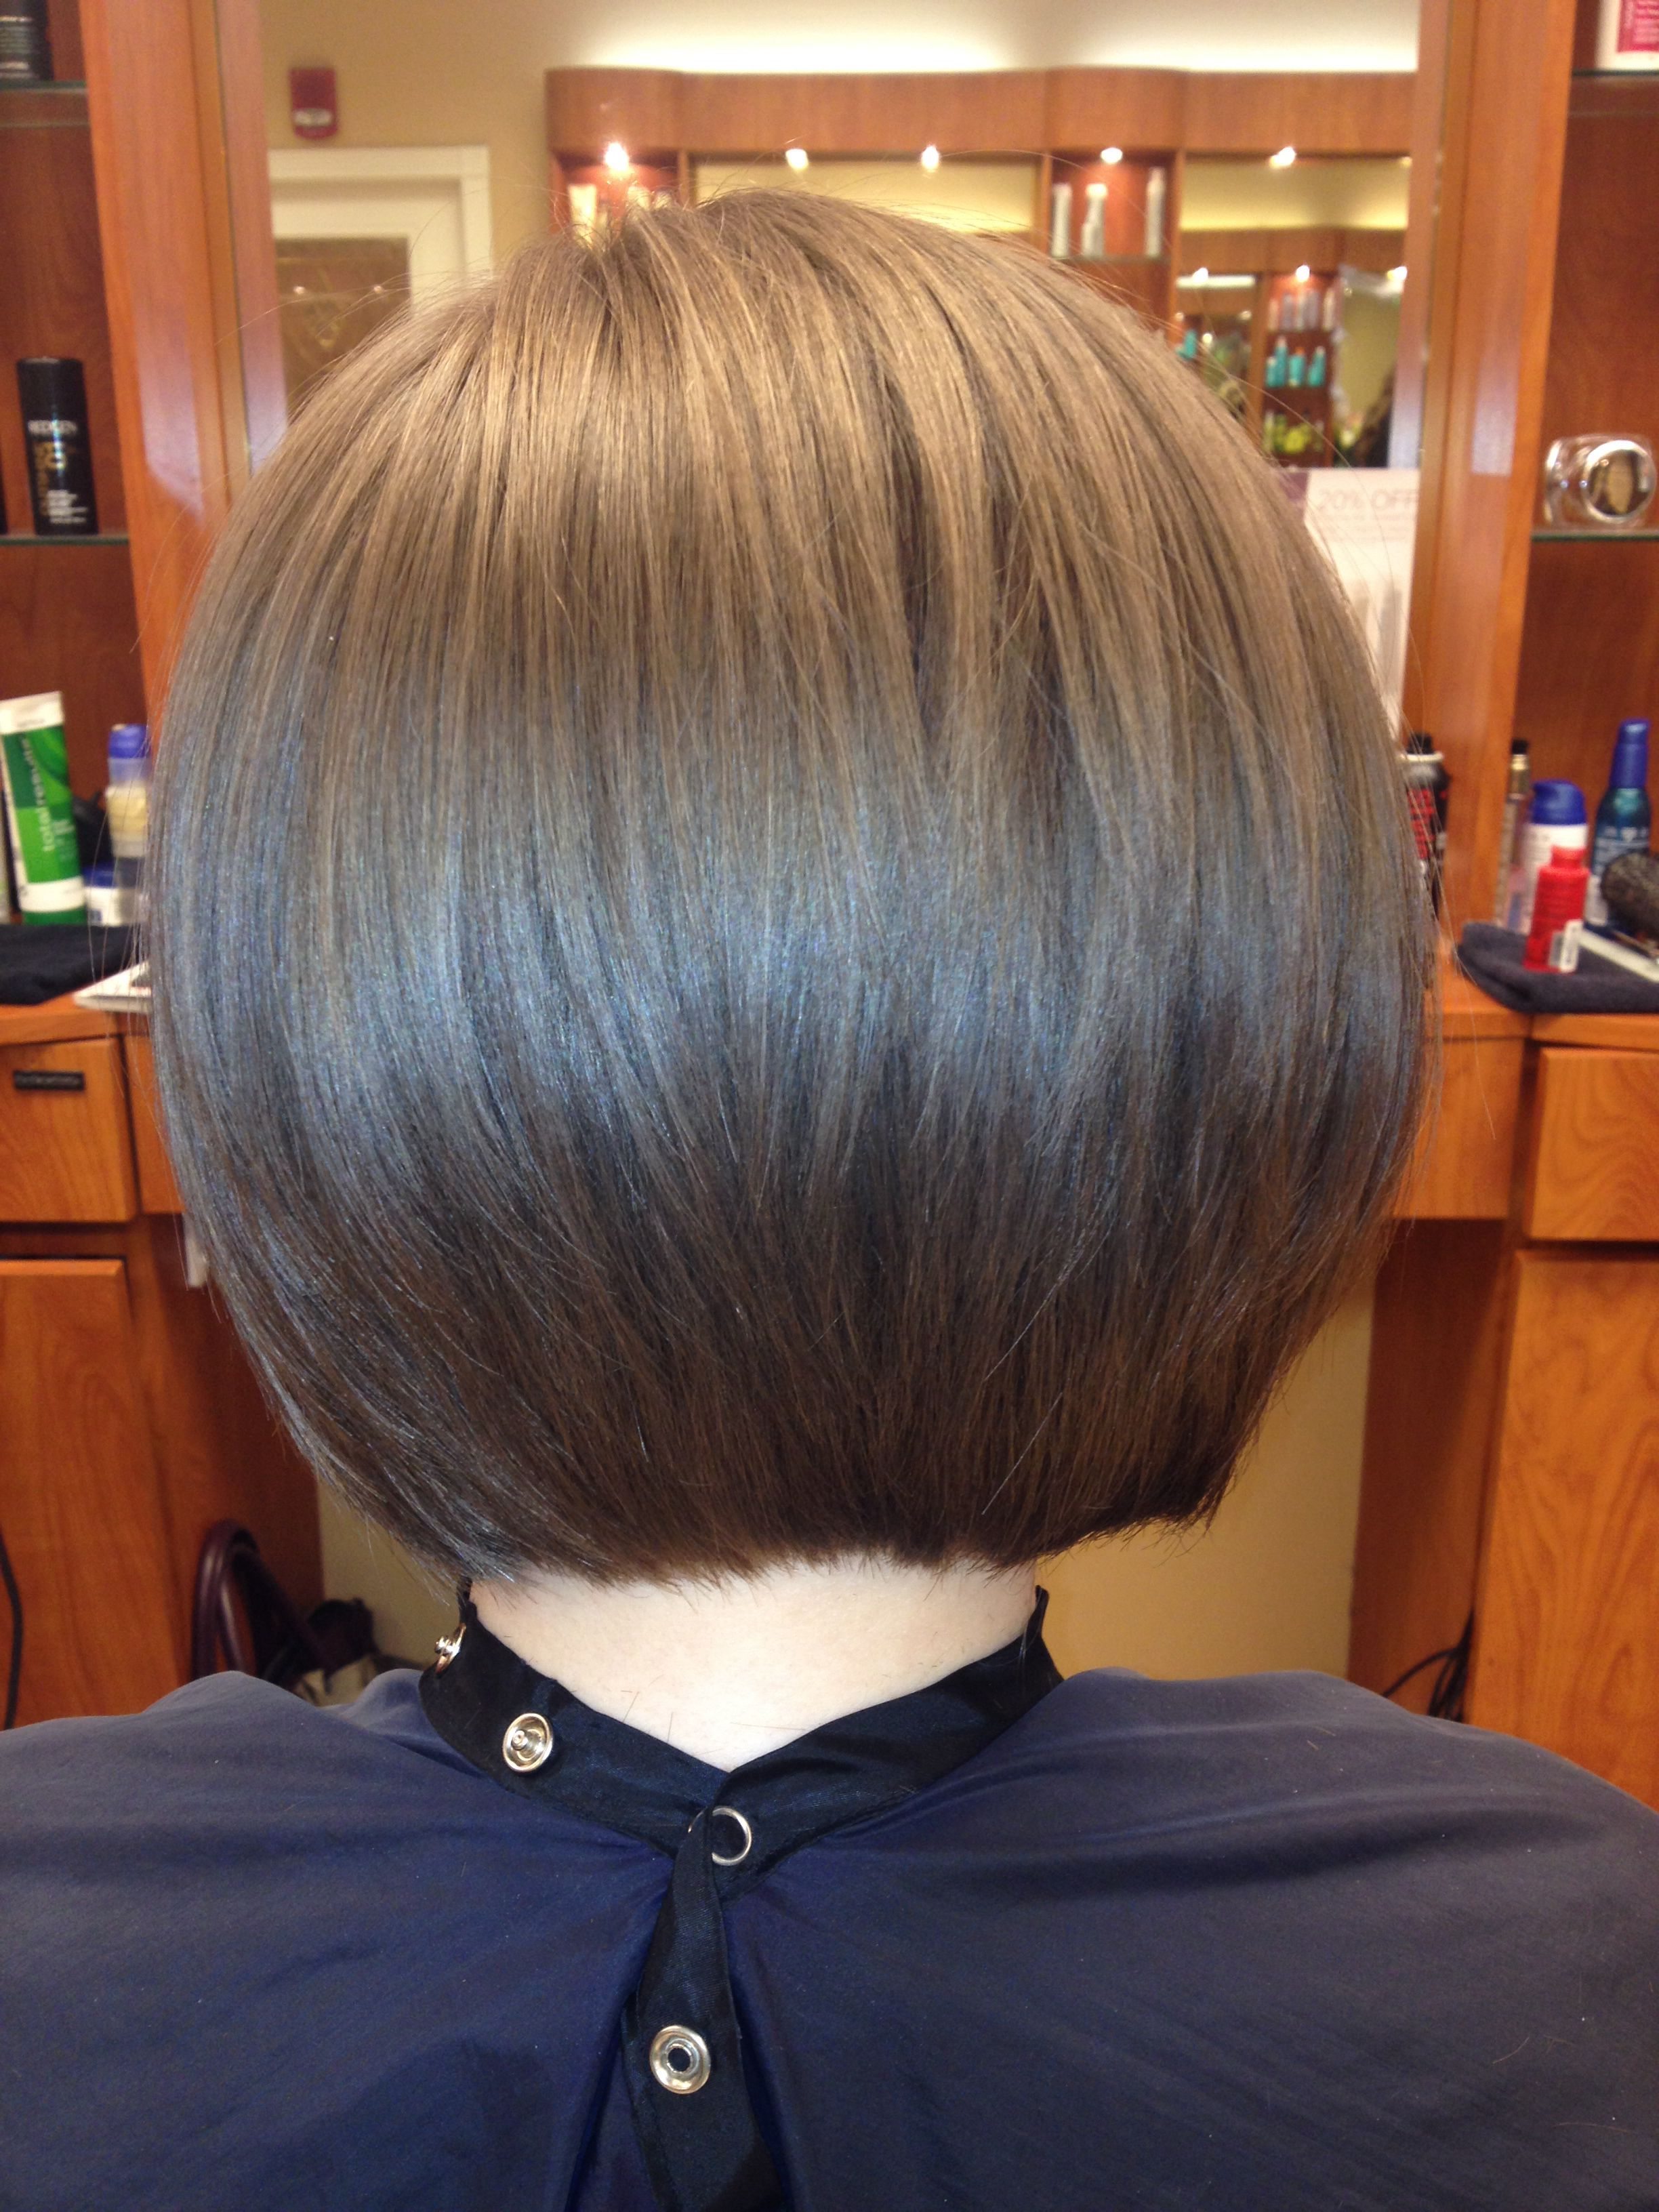 Short Hairstyles With Layers: Bob With Blended Layers